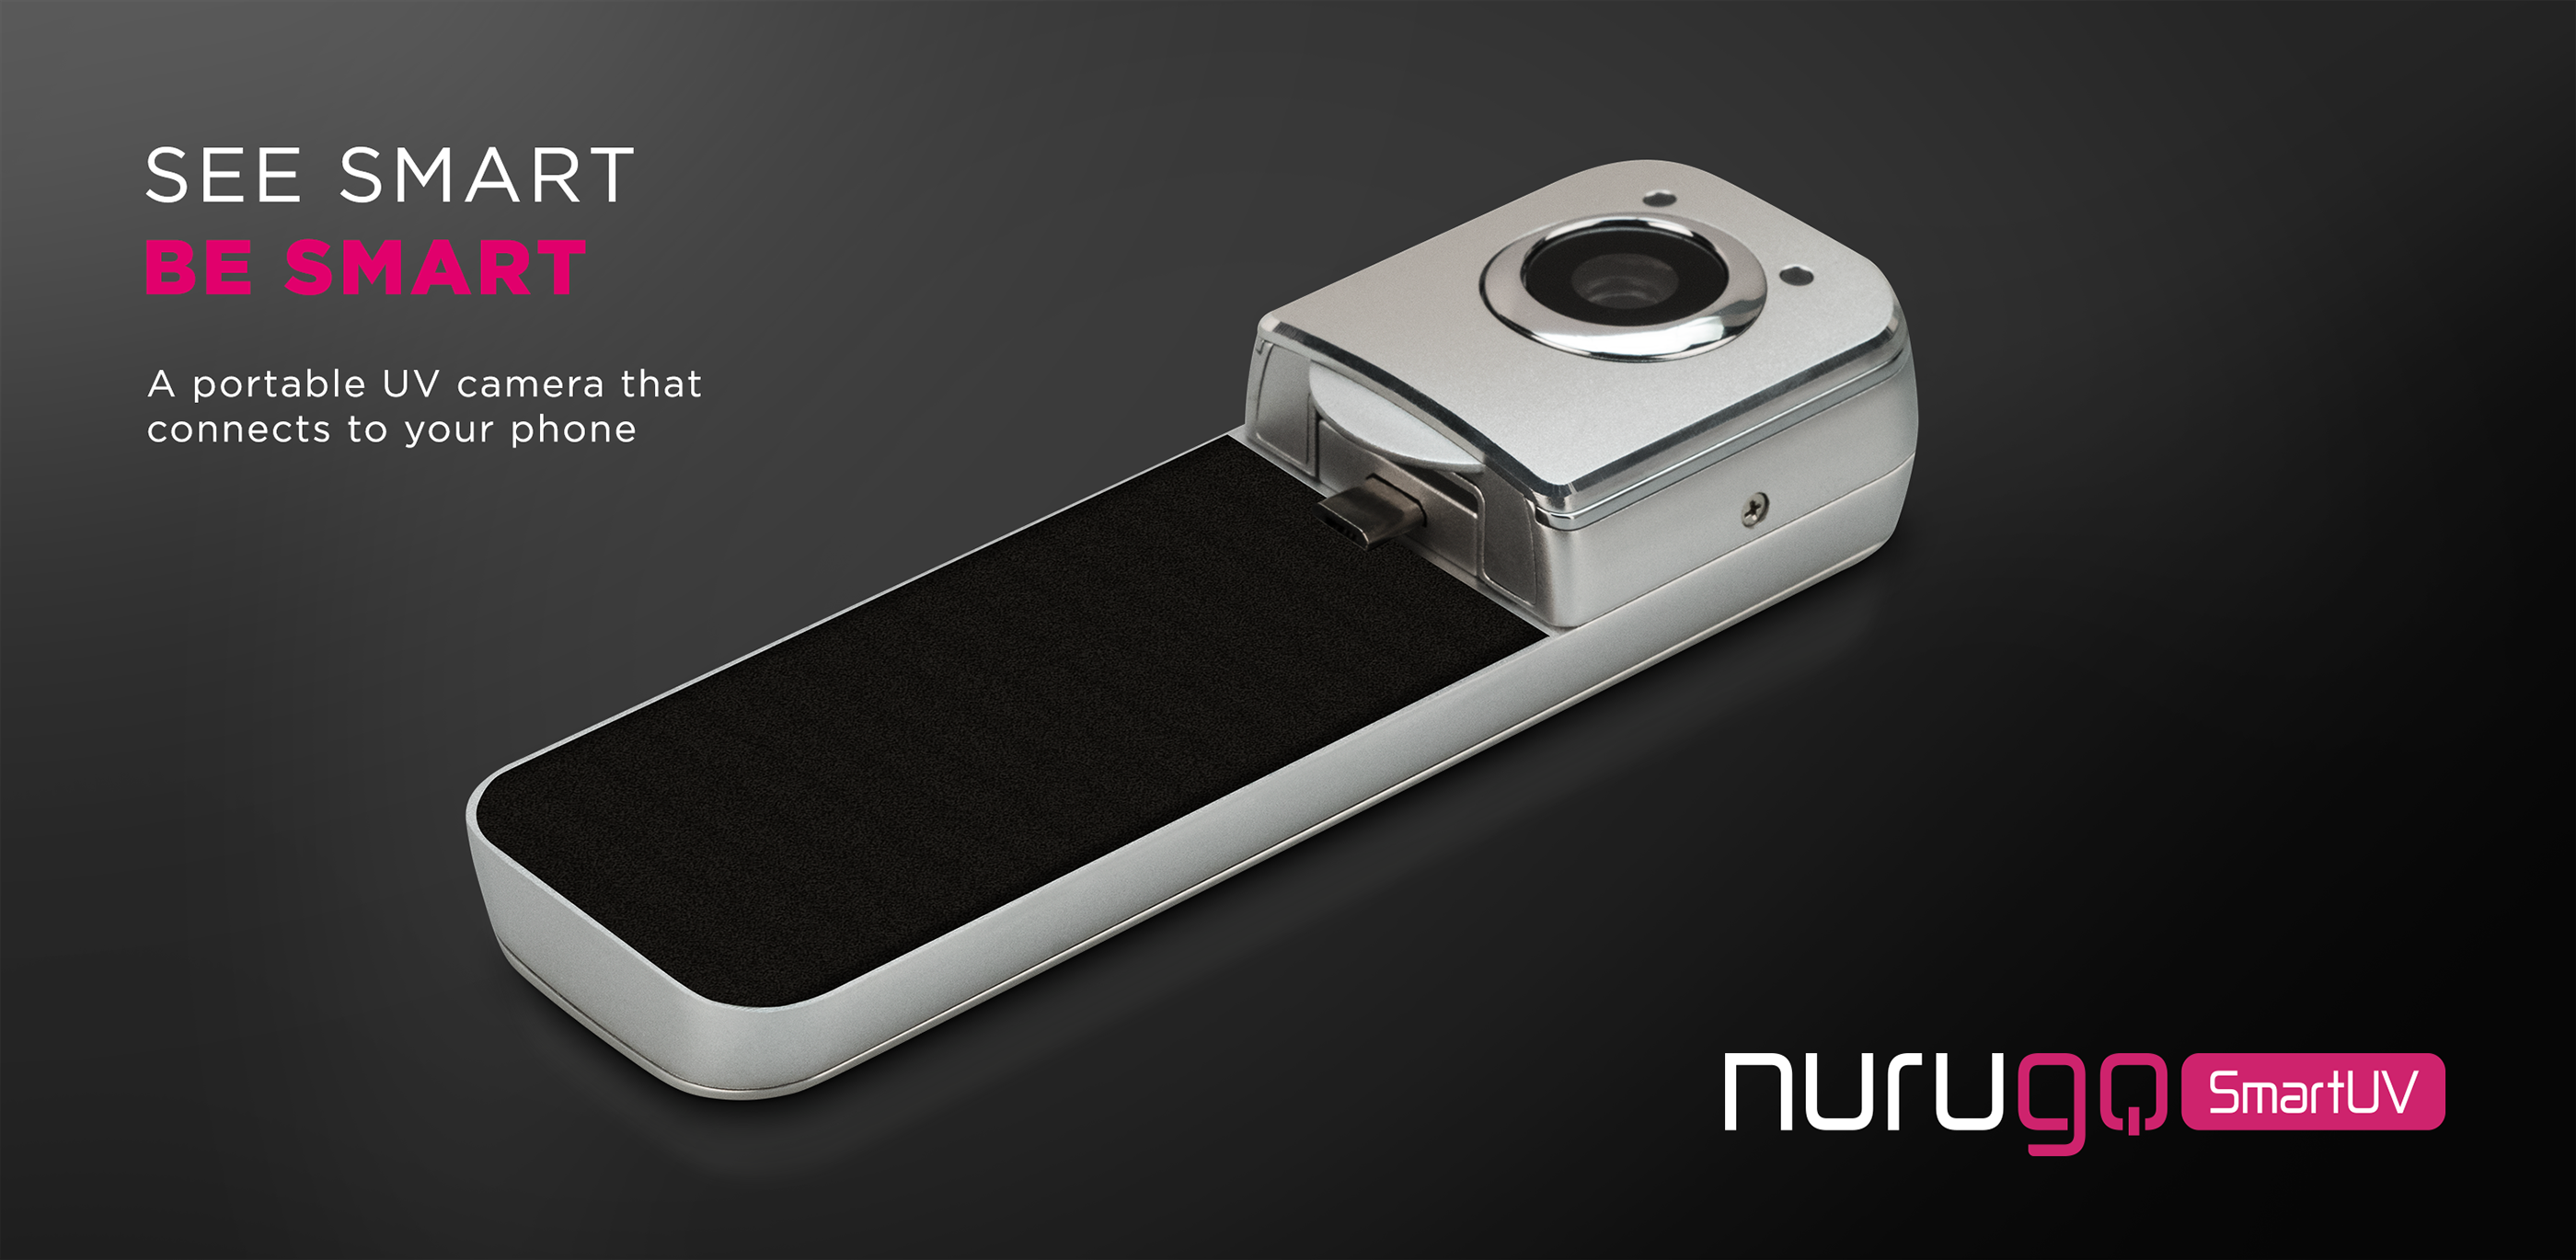 Nurugo SmartUV Kickstarter Campaign on Behance